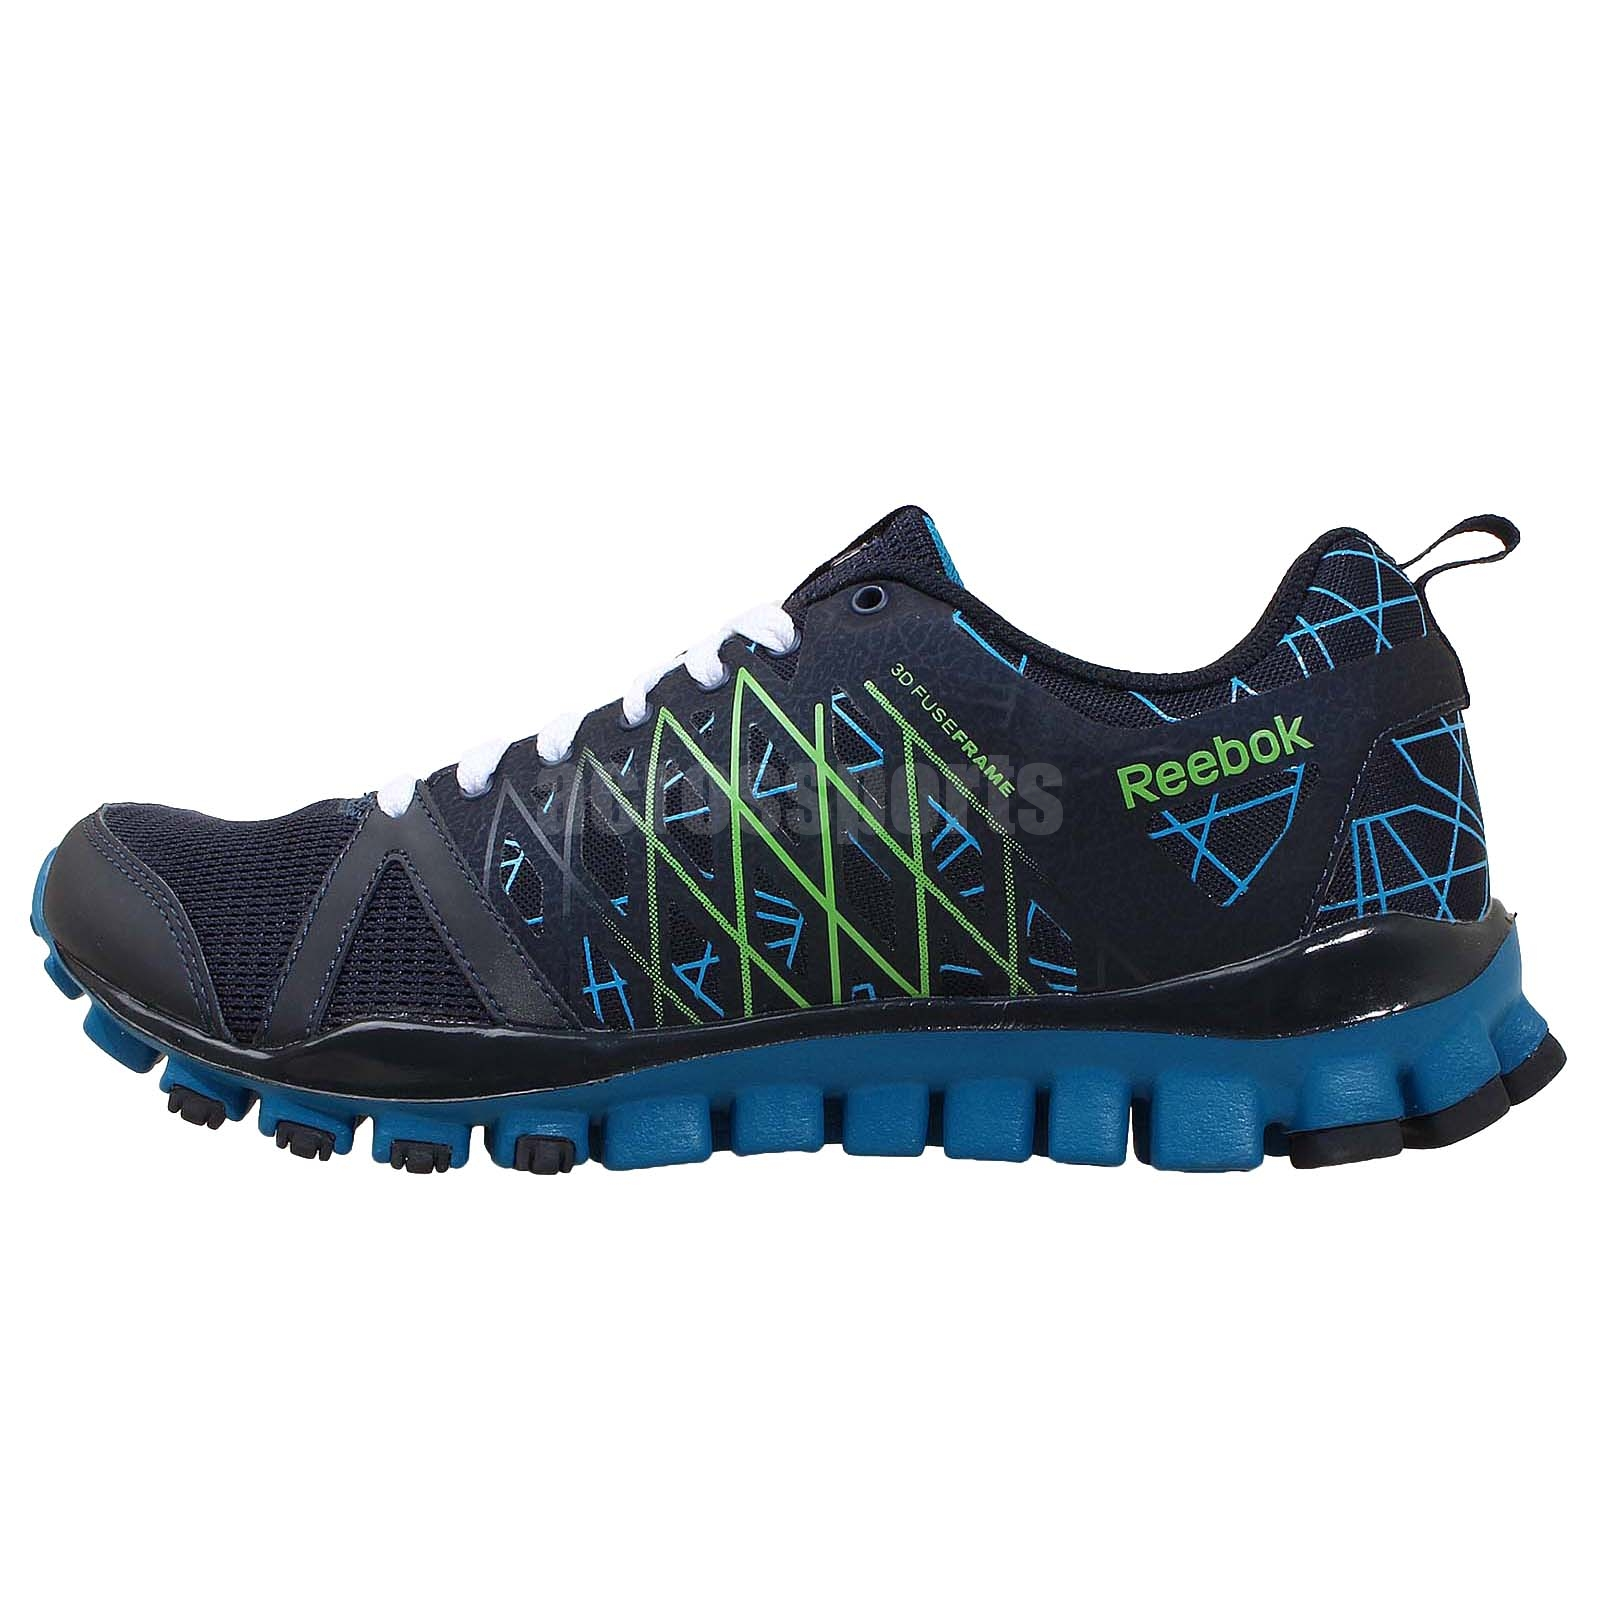 reebok realflex advance 20 navy blue 2014 new mens cross